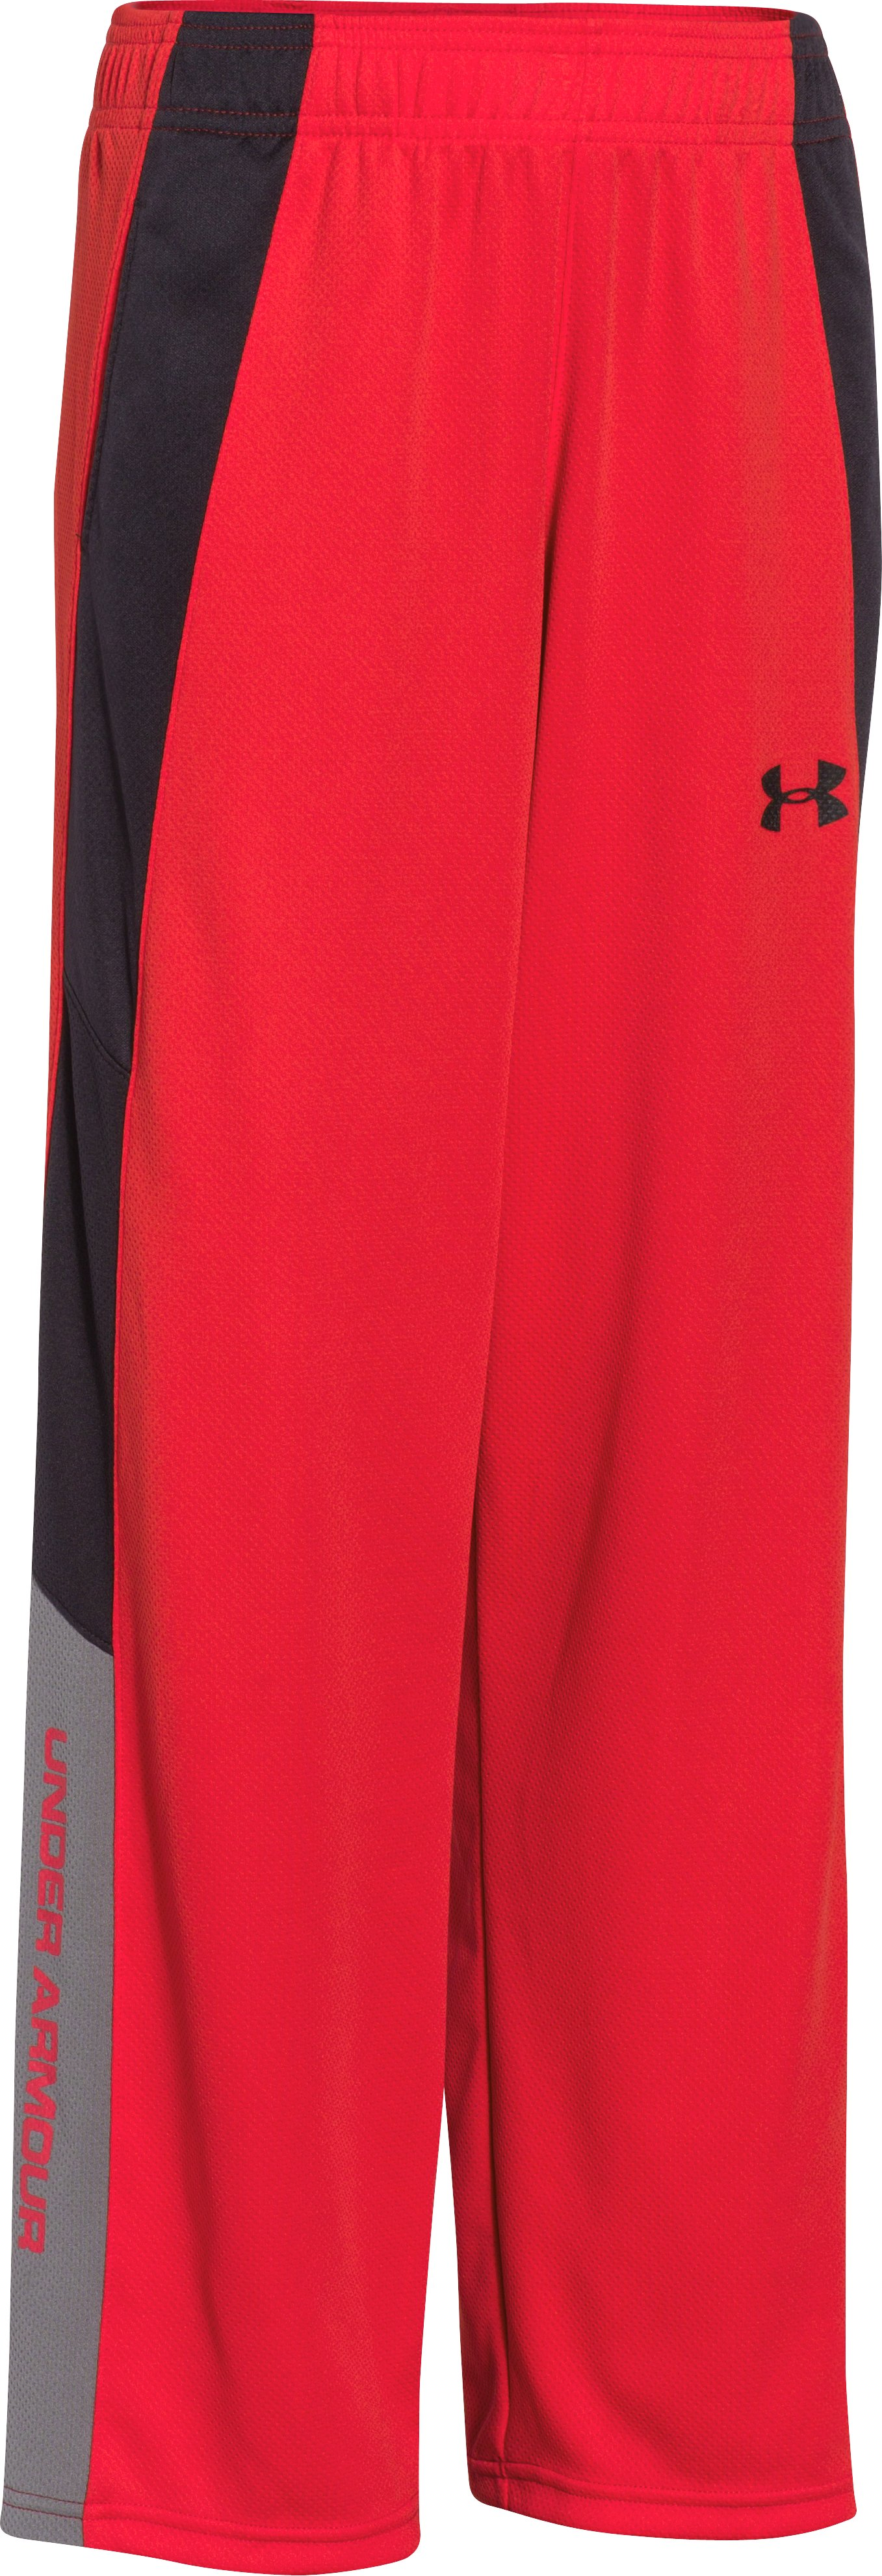 Boys' UA Hero Warm-Up Pants, RISK RED, zoomed image